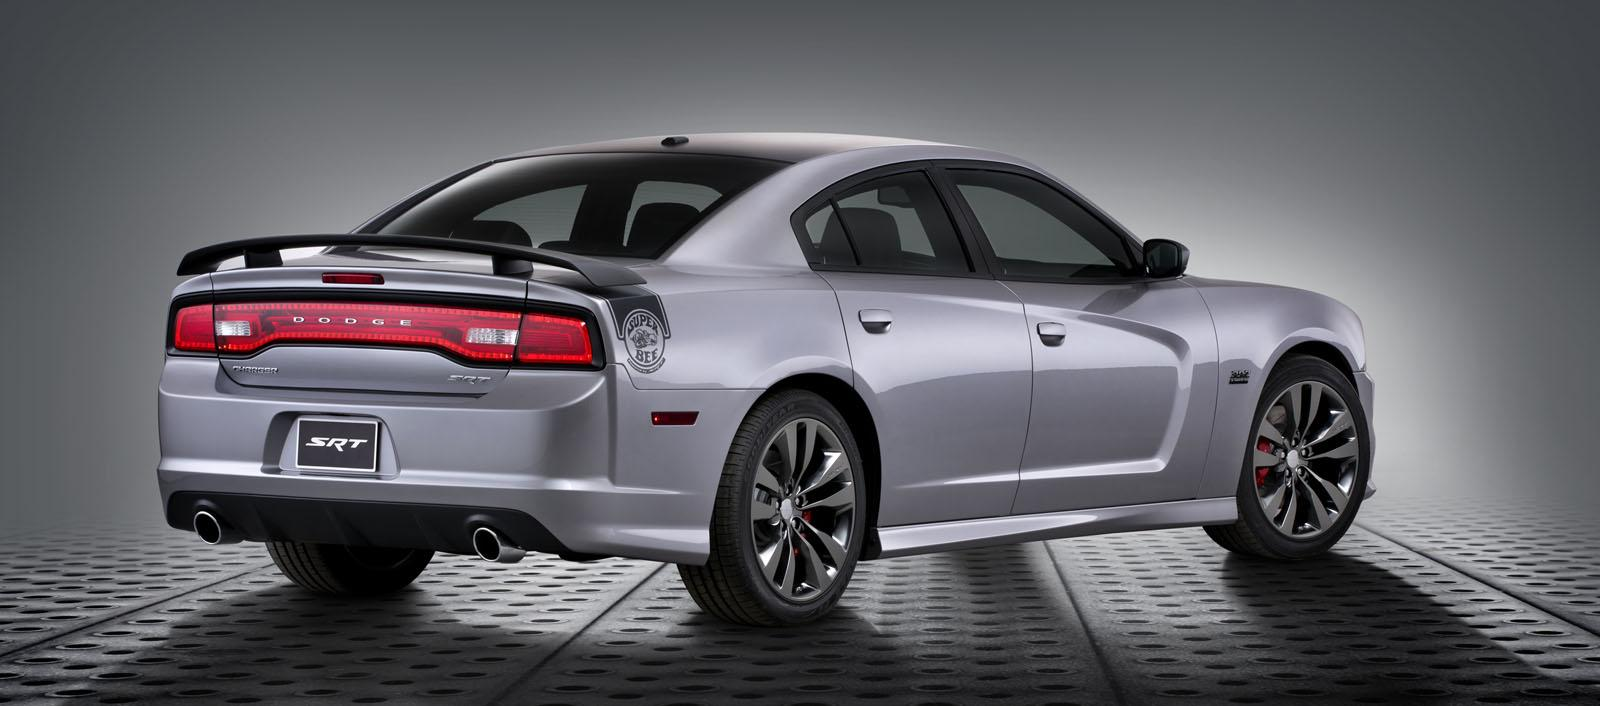 2014 Dodge Charger Commercials Clarify What HEMI Power is All